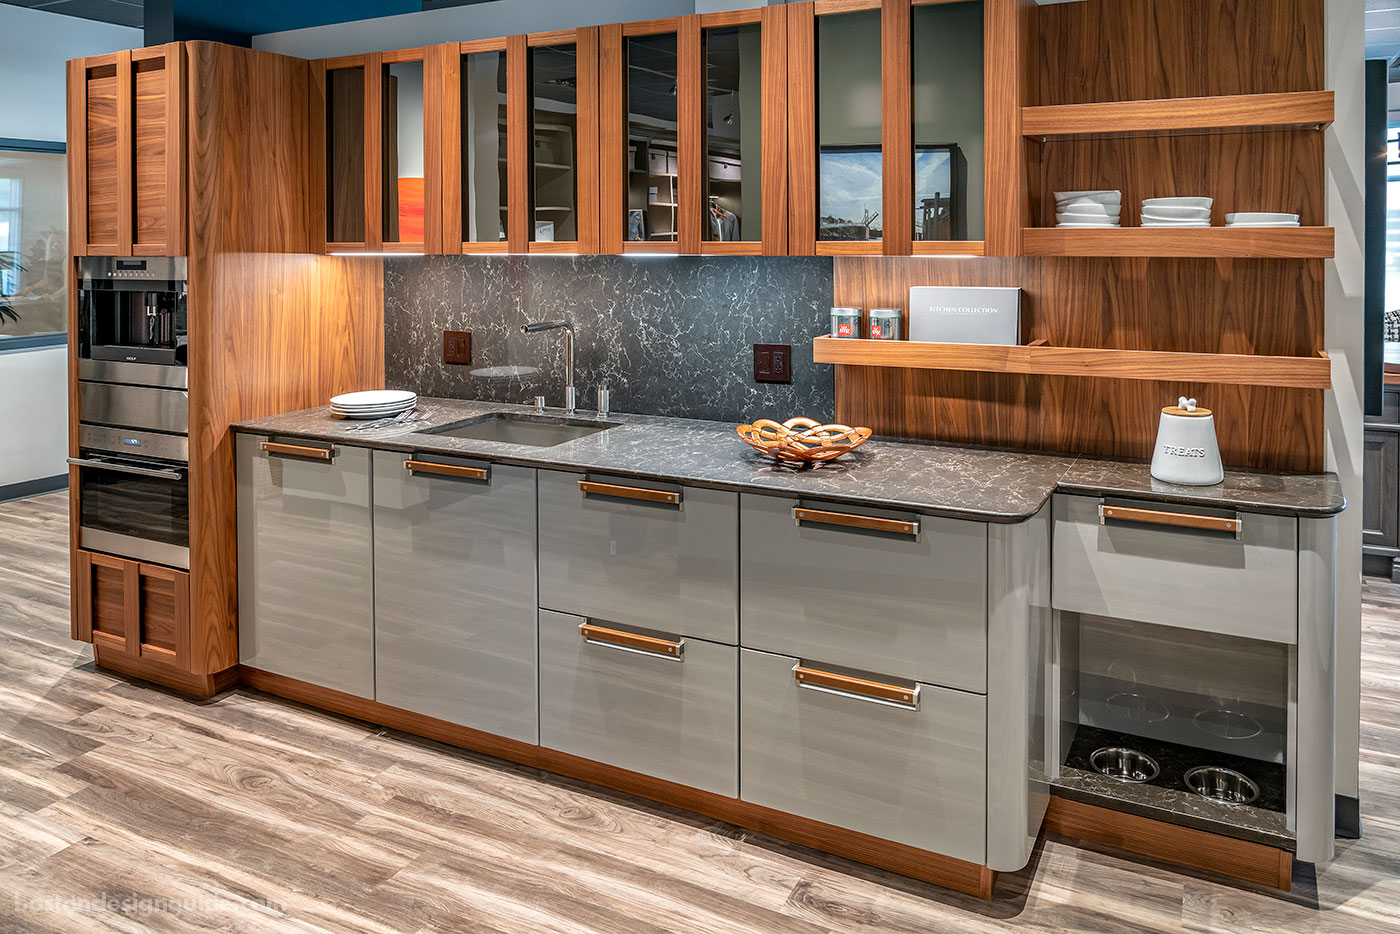 Interiology Design Studio Co. Custom Kitchen featuring Composit cabinetry